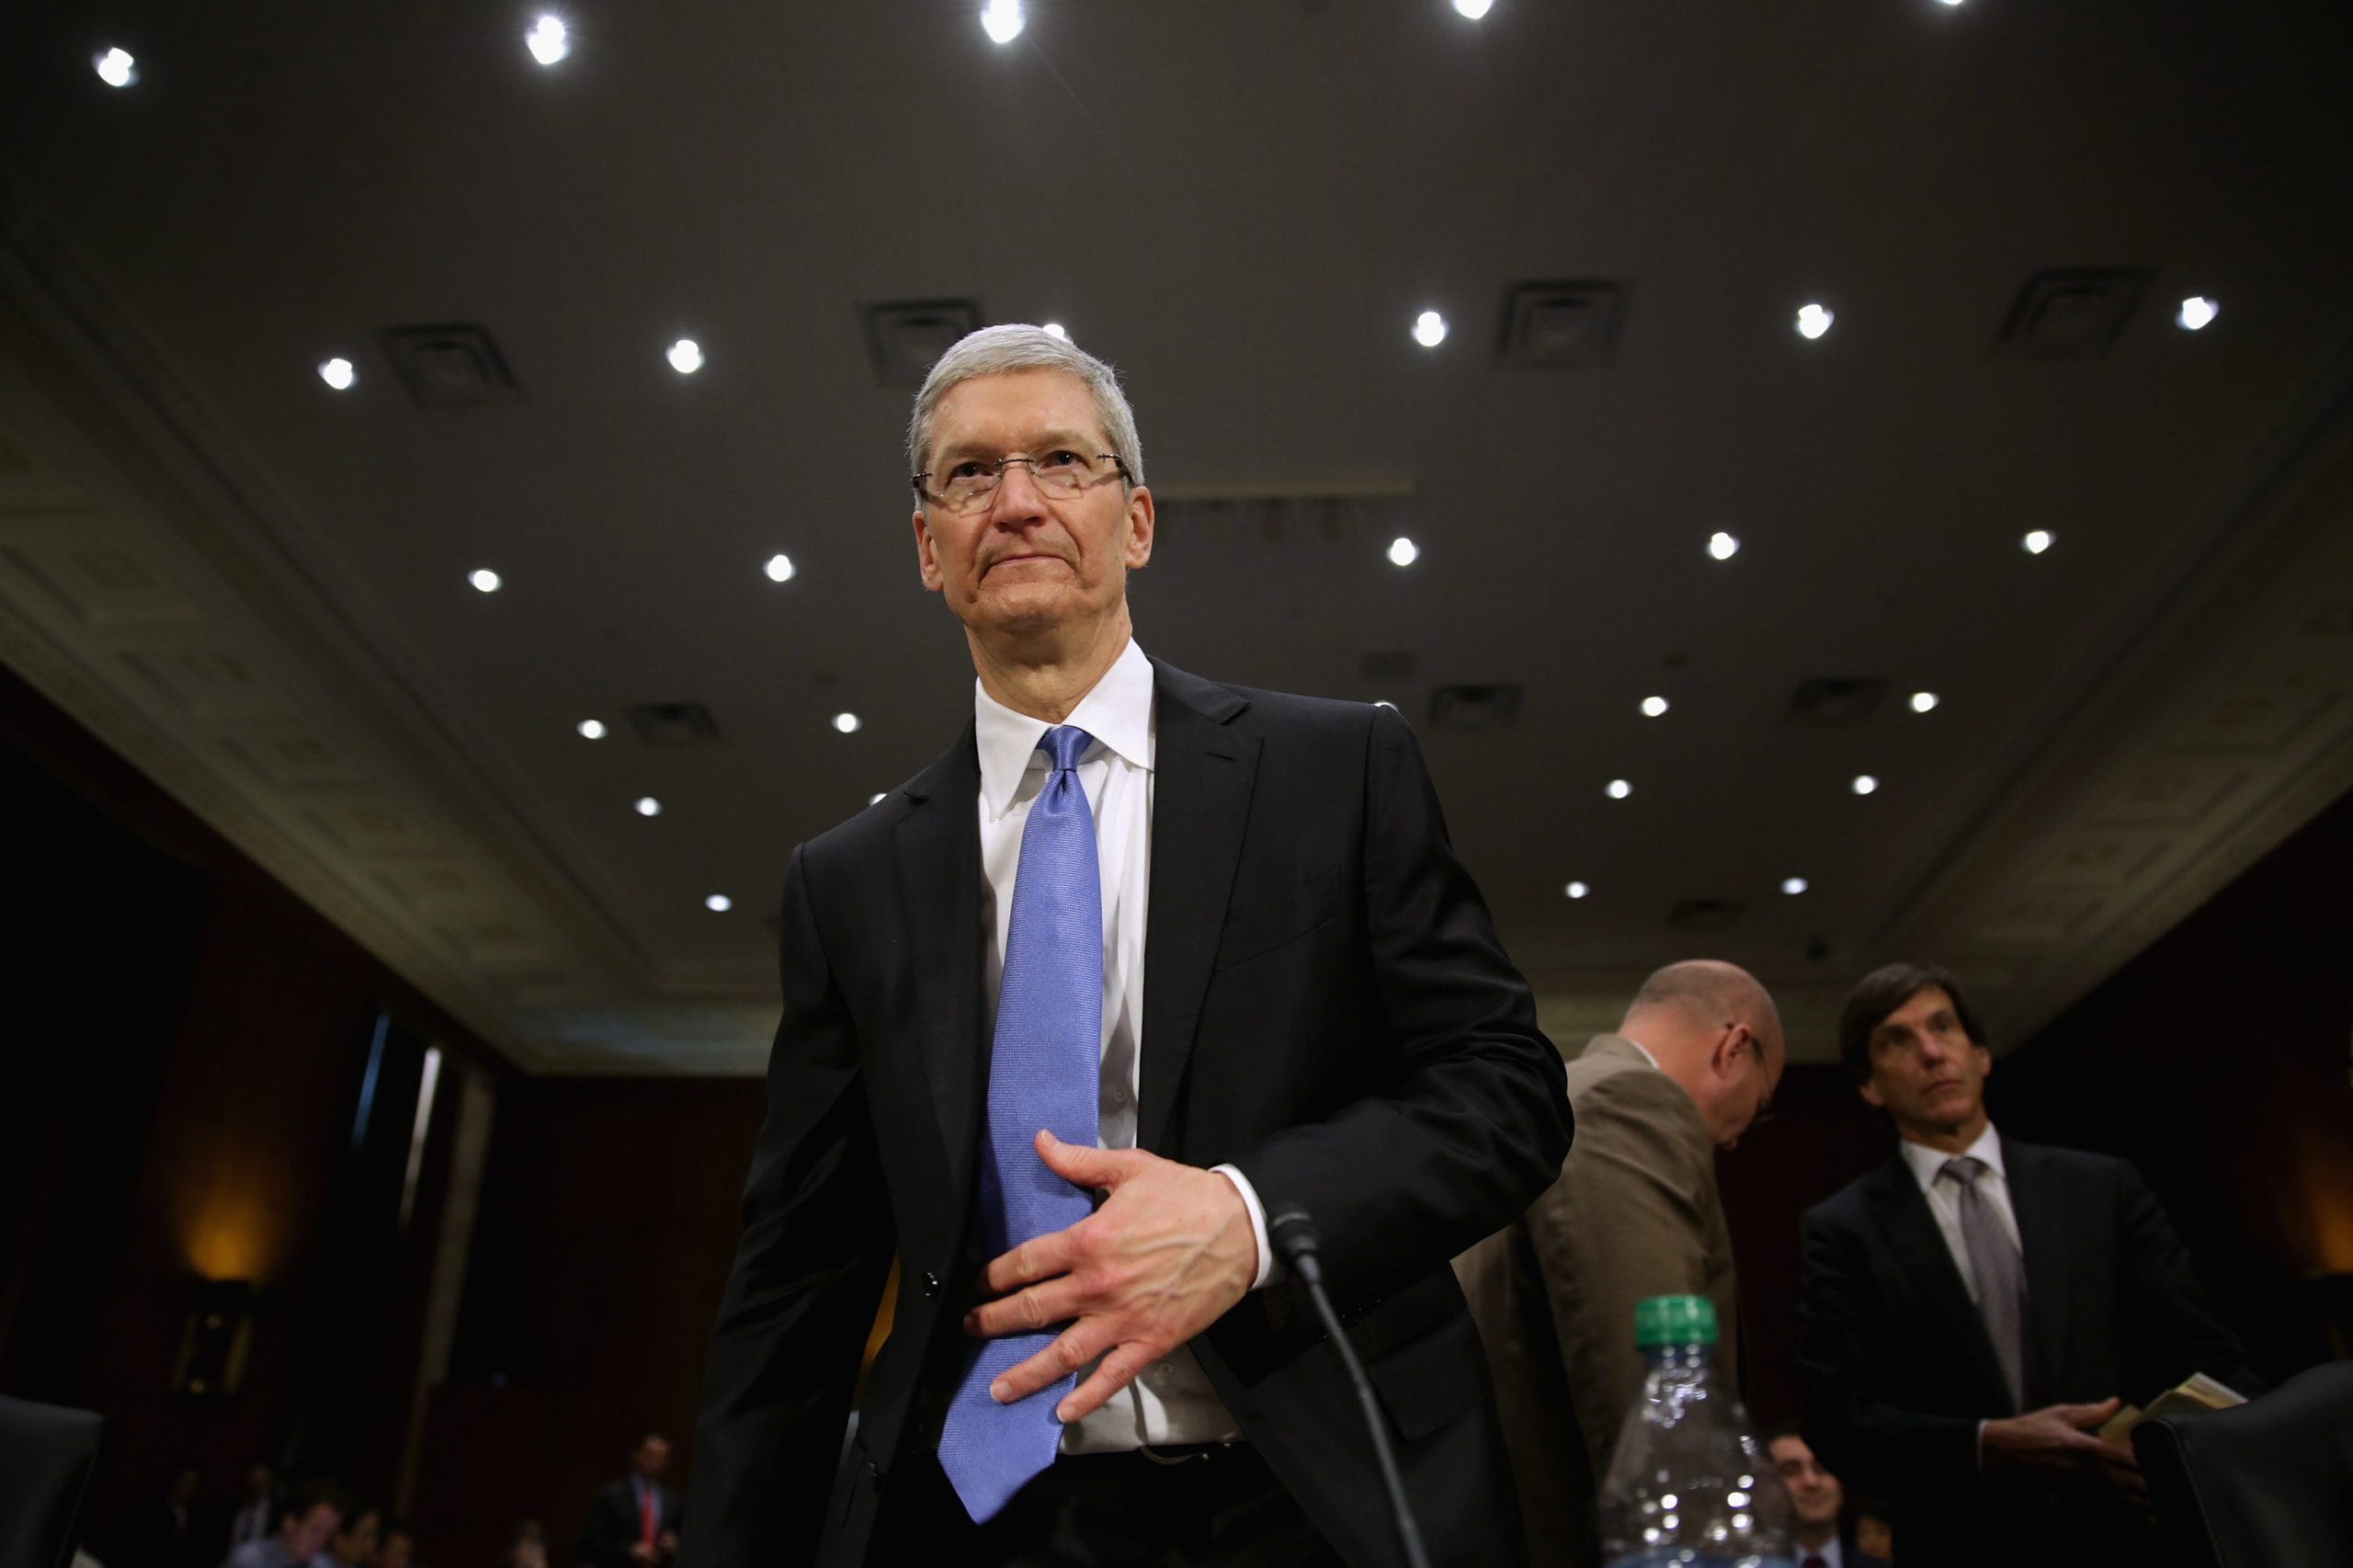 Apple CEO Timothy Cook arrives to a hearing on Capitol Hill on May 21, 2013. (Chip Somodevilla/Getty Images)